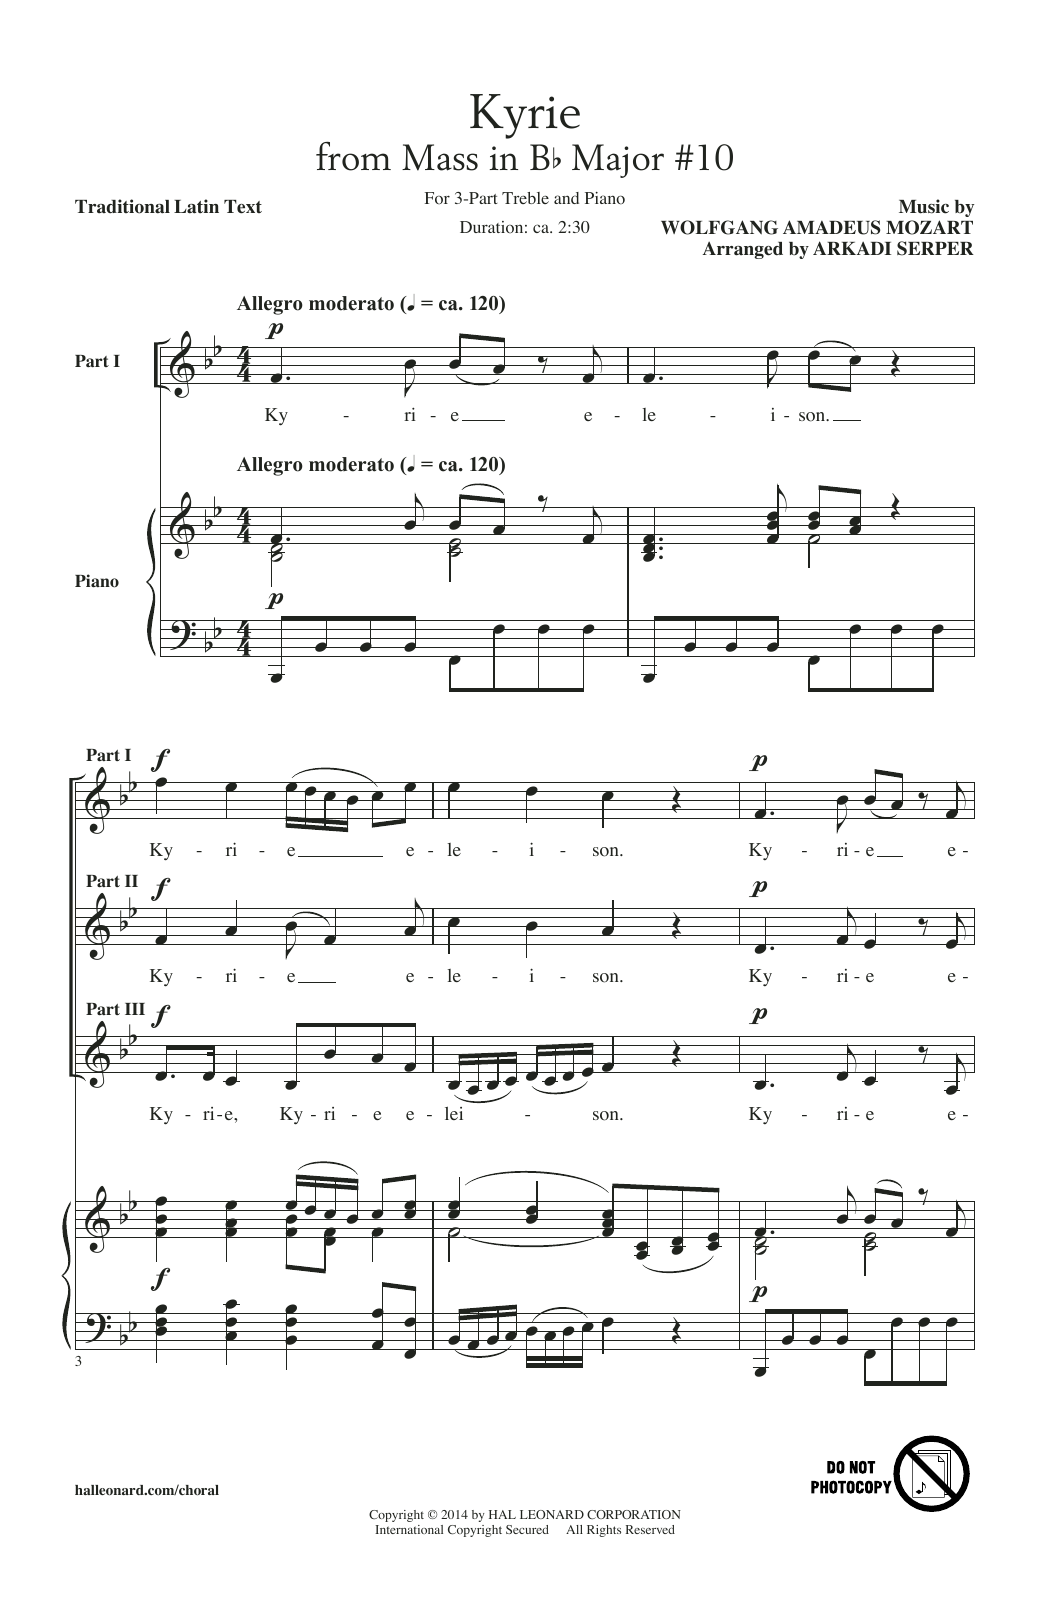 Arkadi Serper Kyrie (From The Mass In B-Flat Major #10) sheet music notes and chords. Download Printable PDF.